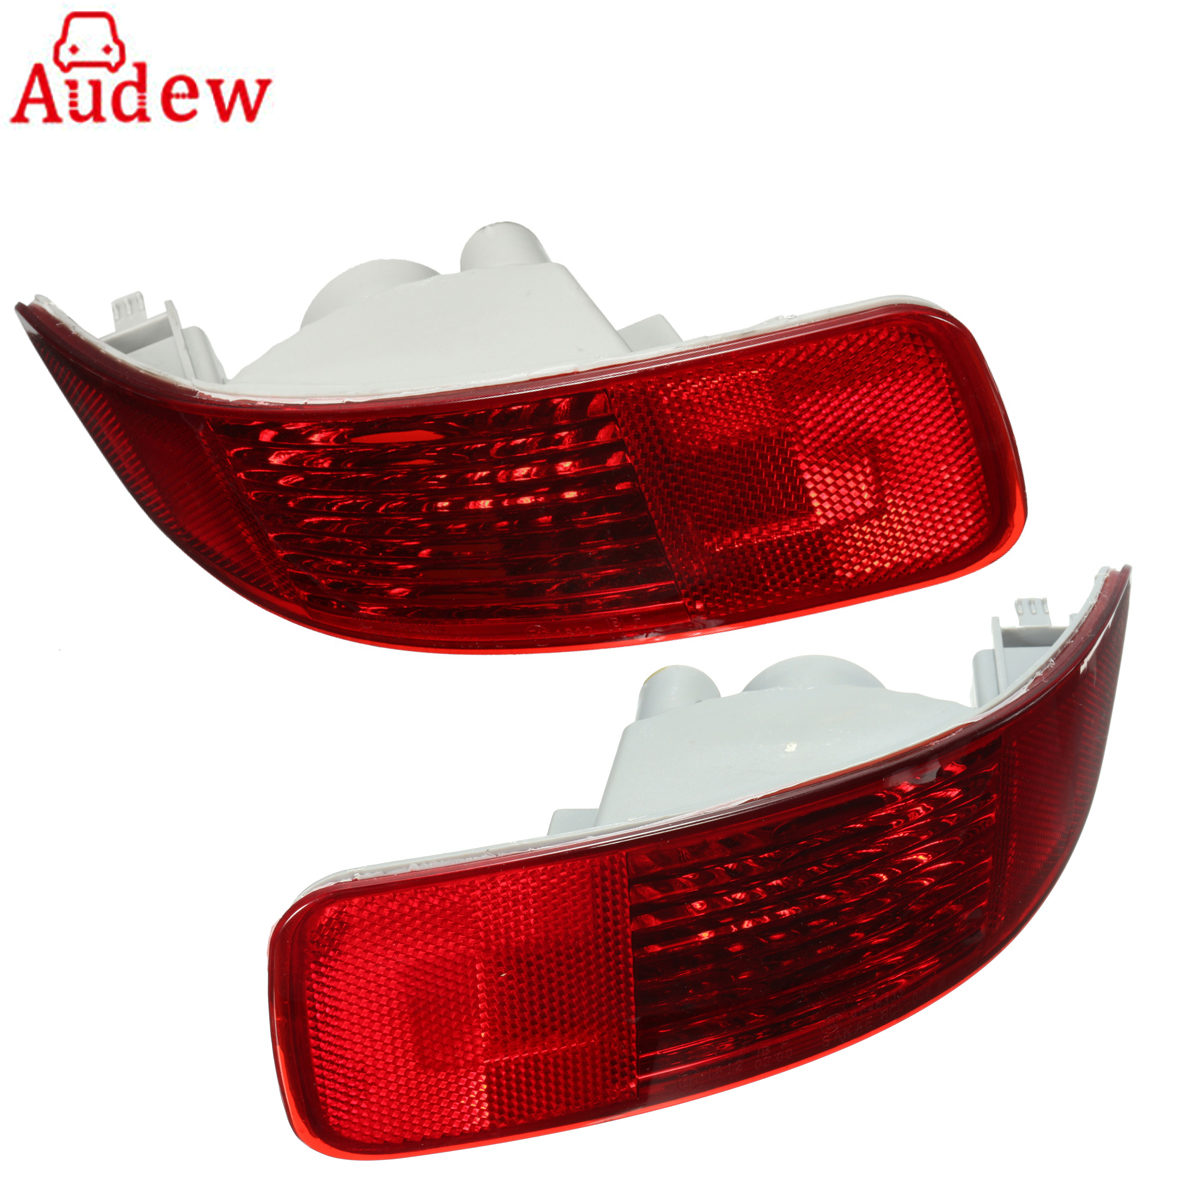 1Pcs Car Rear Right/Left Tail Fog Light Warning Lamp For Mitsubish Outlander for Peugeot for Citroen 07-12 ...